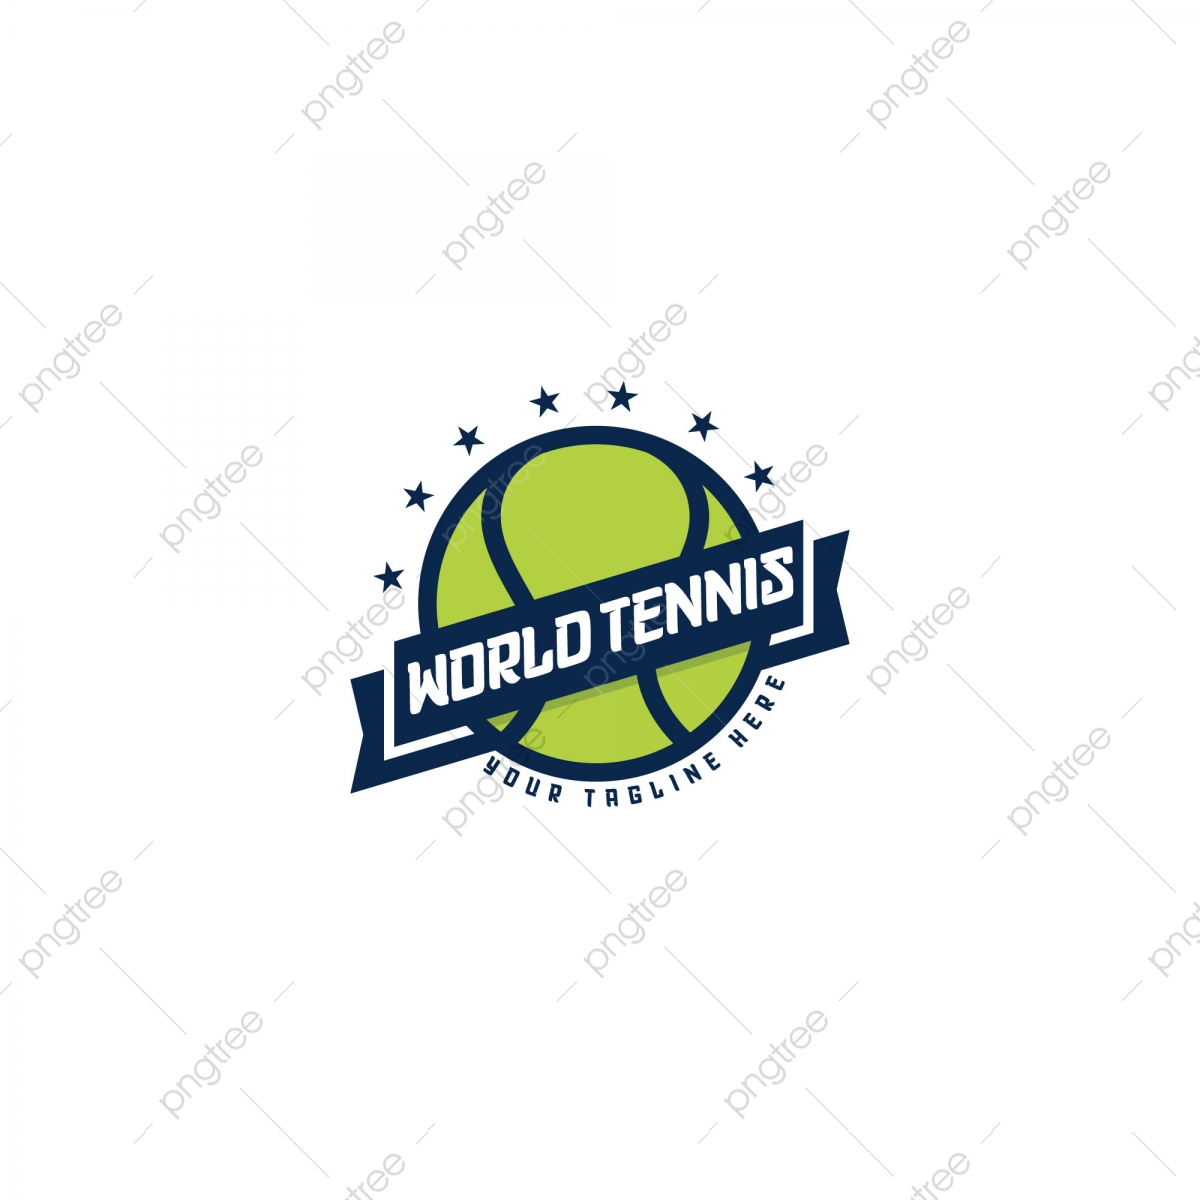 Tennis Logo Png Vector Psd And Clipart With Transparent Background For Free Download Pngtree